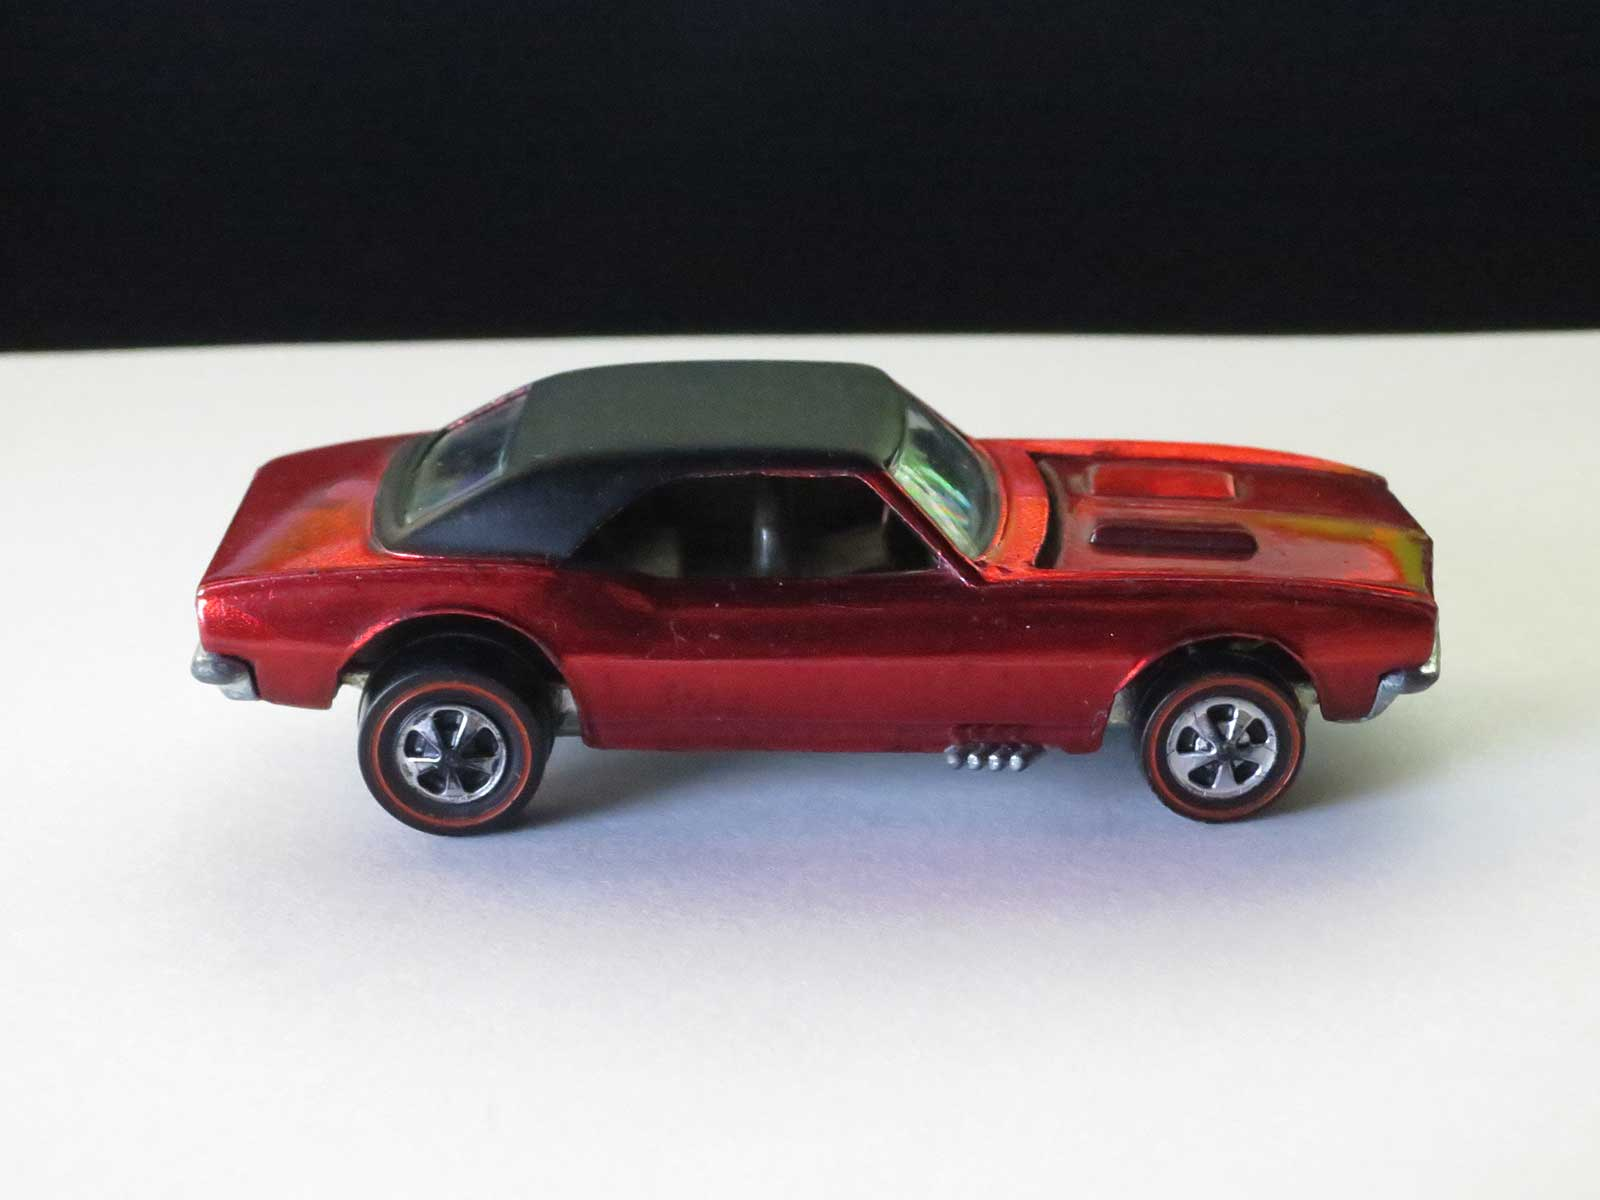 Hot Wheels Redline Early Production Red Custom Camaro US Tabbed Base